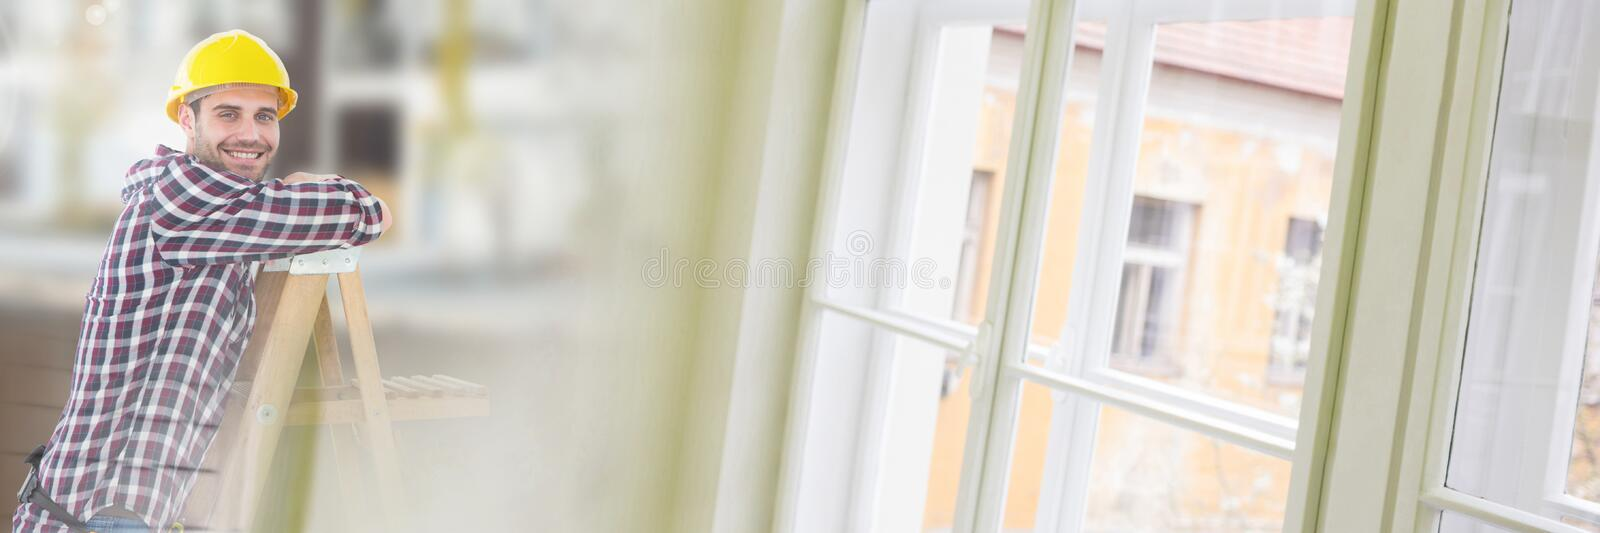 Construction Worker on ladder in front of construction site with window transition effect stock photos